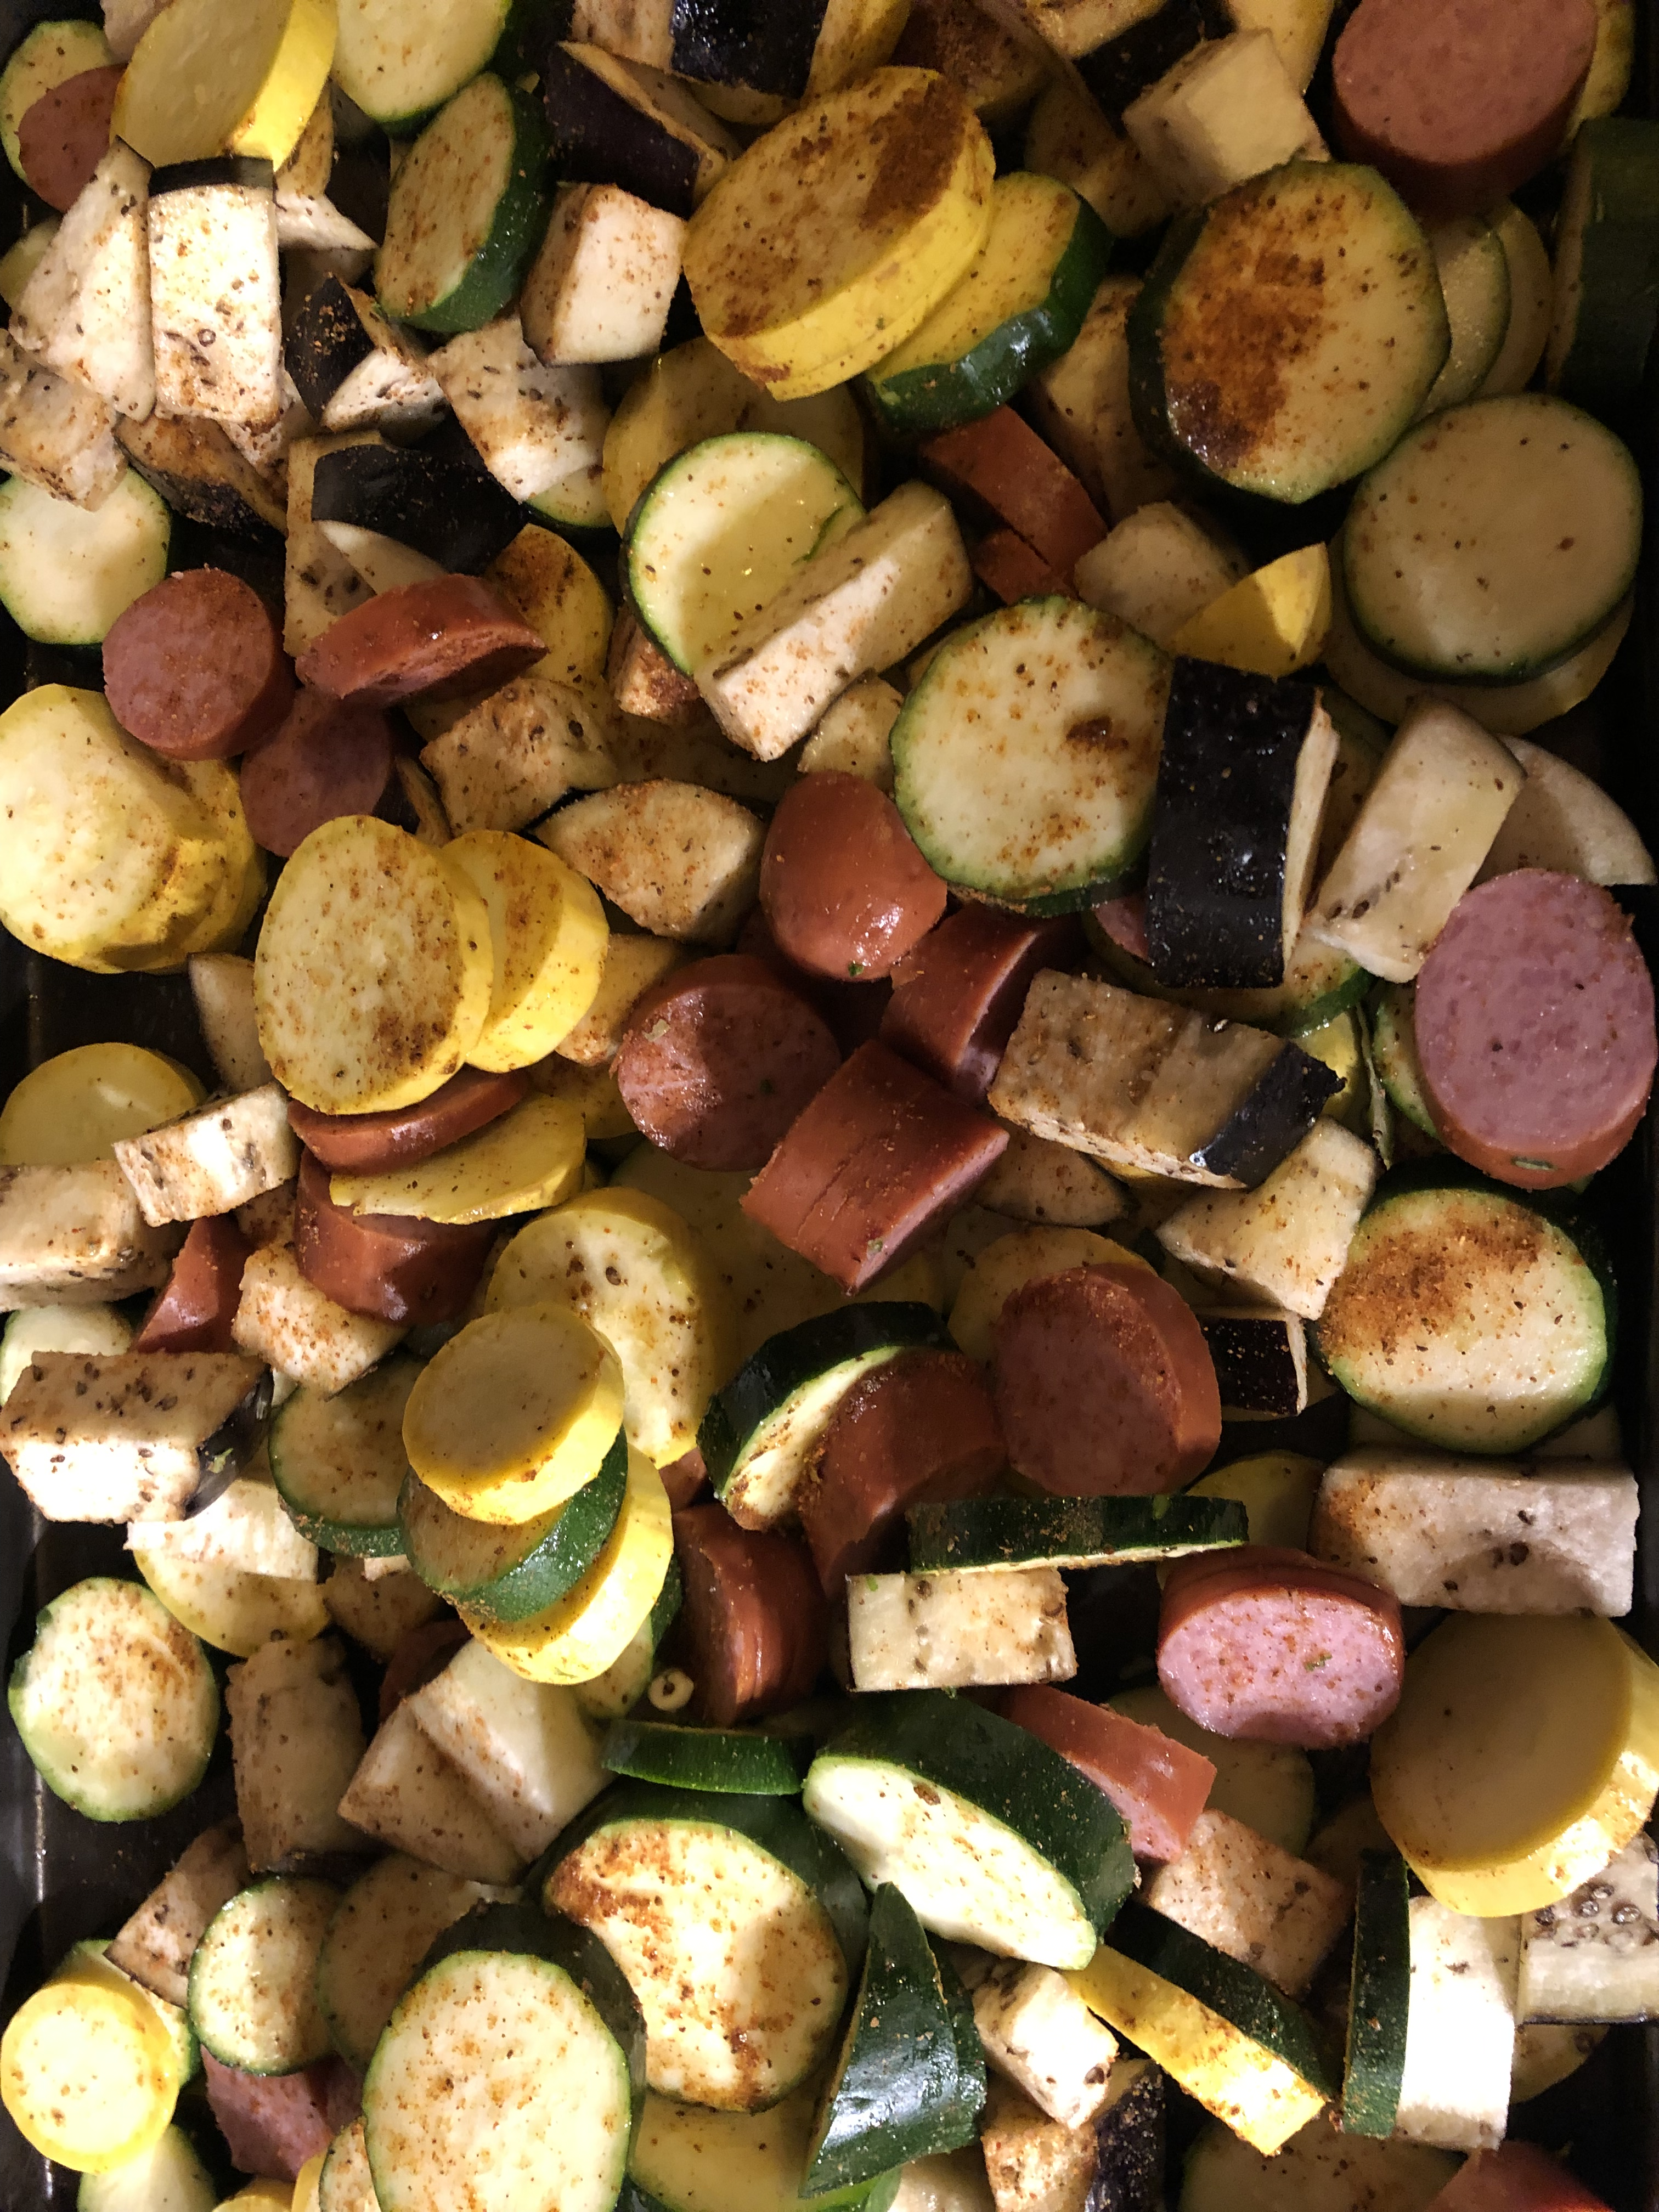 roasted veggies and sausage with seasoning step 1